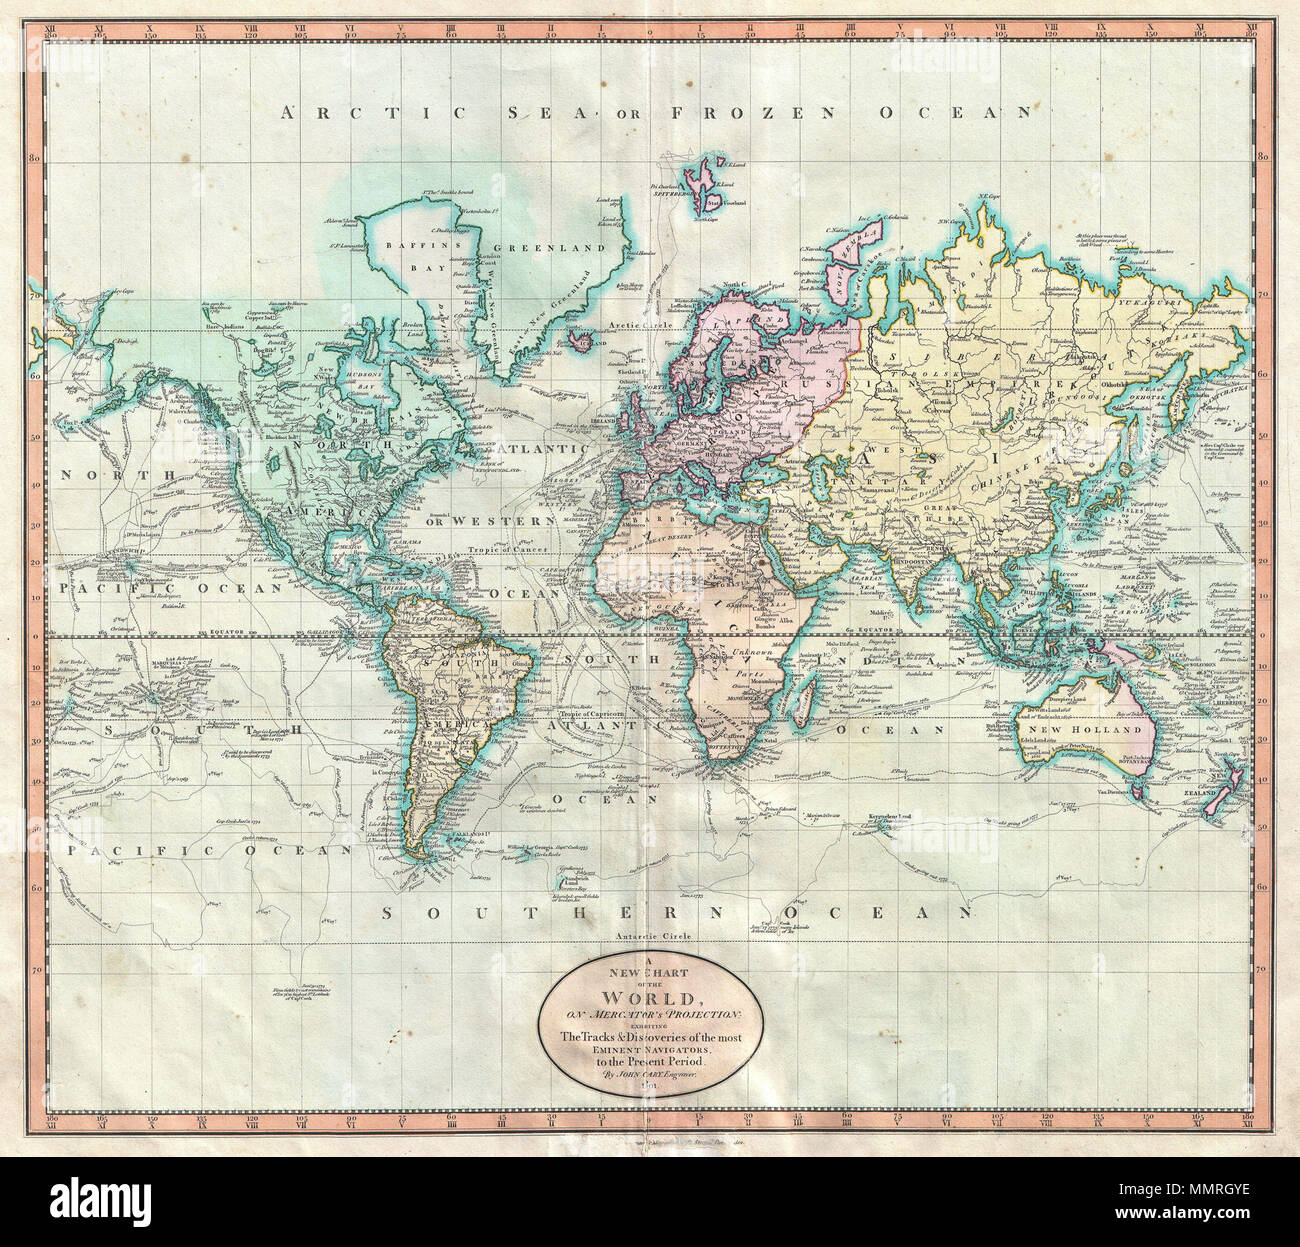 English john carys wonderful 1801 map of the world on mercators english john carys wonderful 1801 map of the world on mercators projection details the entire world as it was known at the turn of the 19th century gumiabroncs